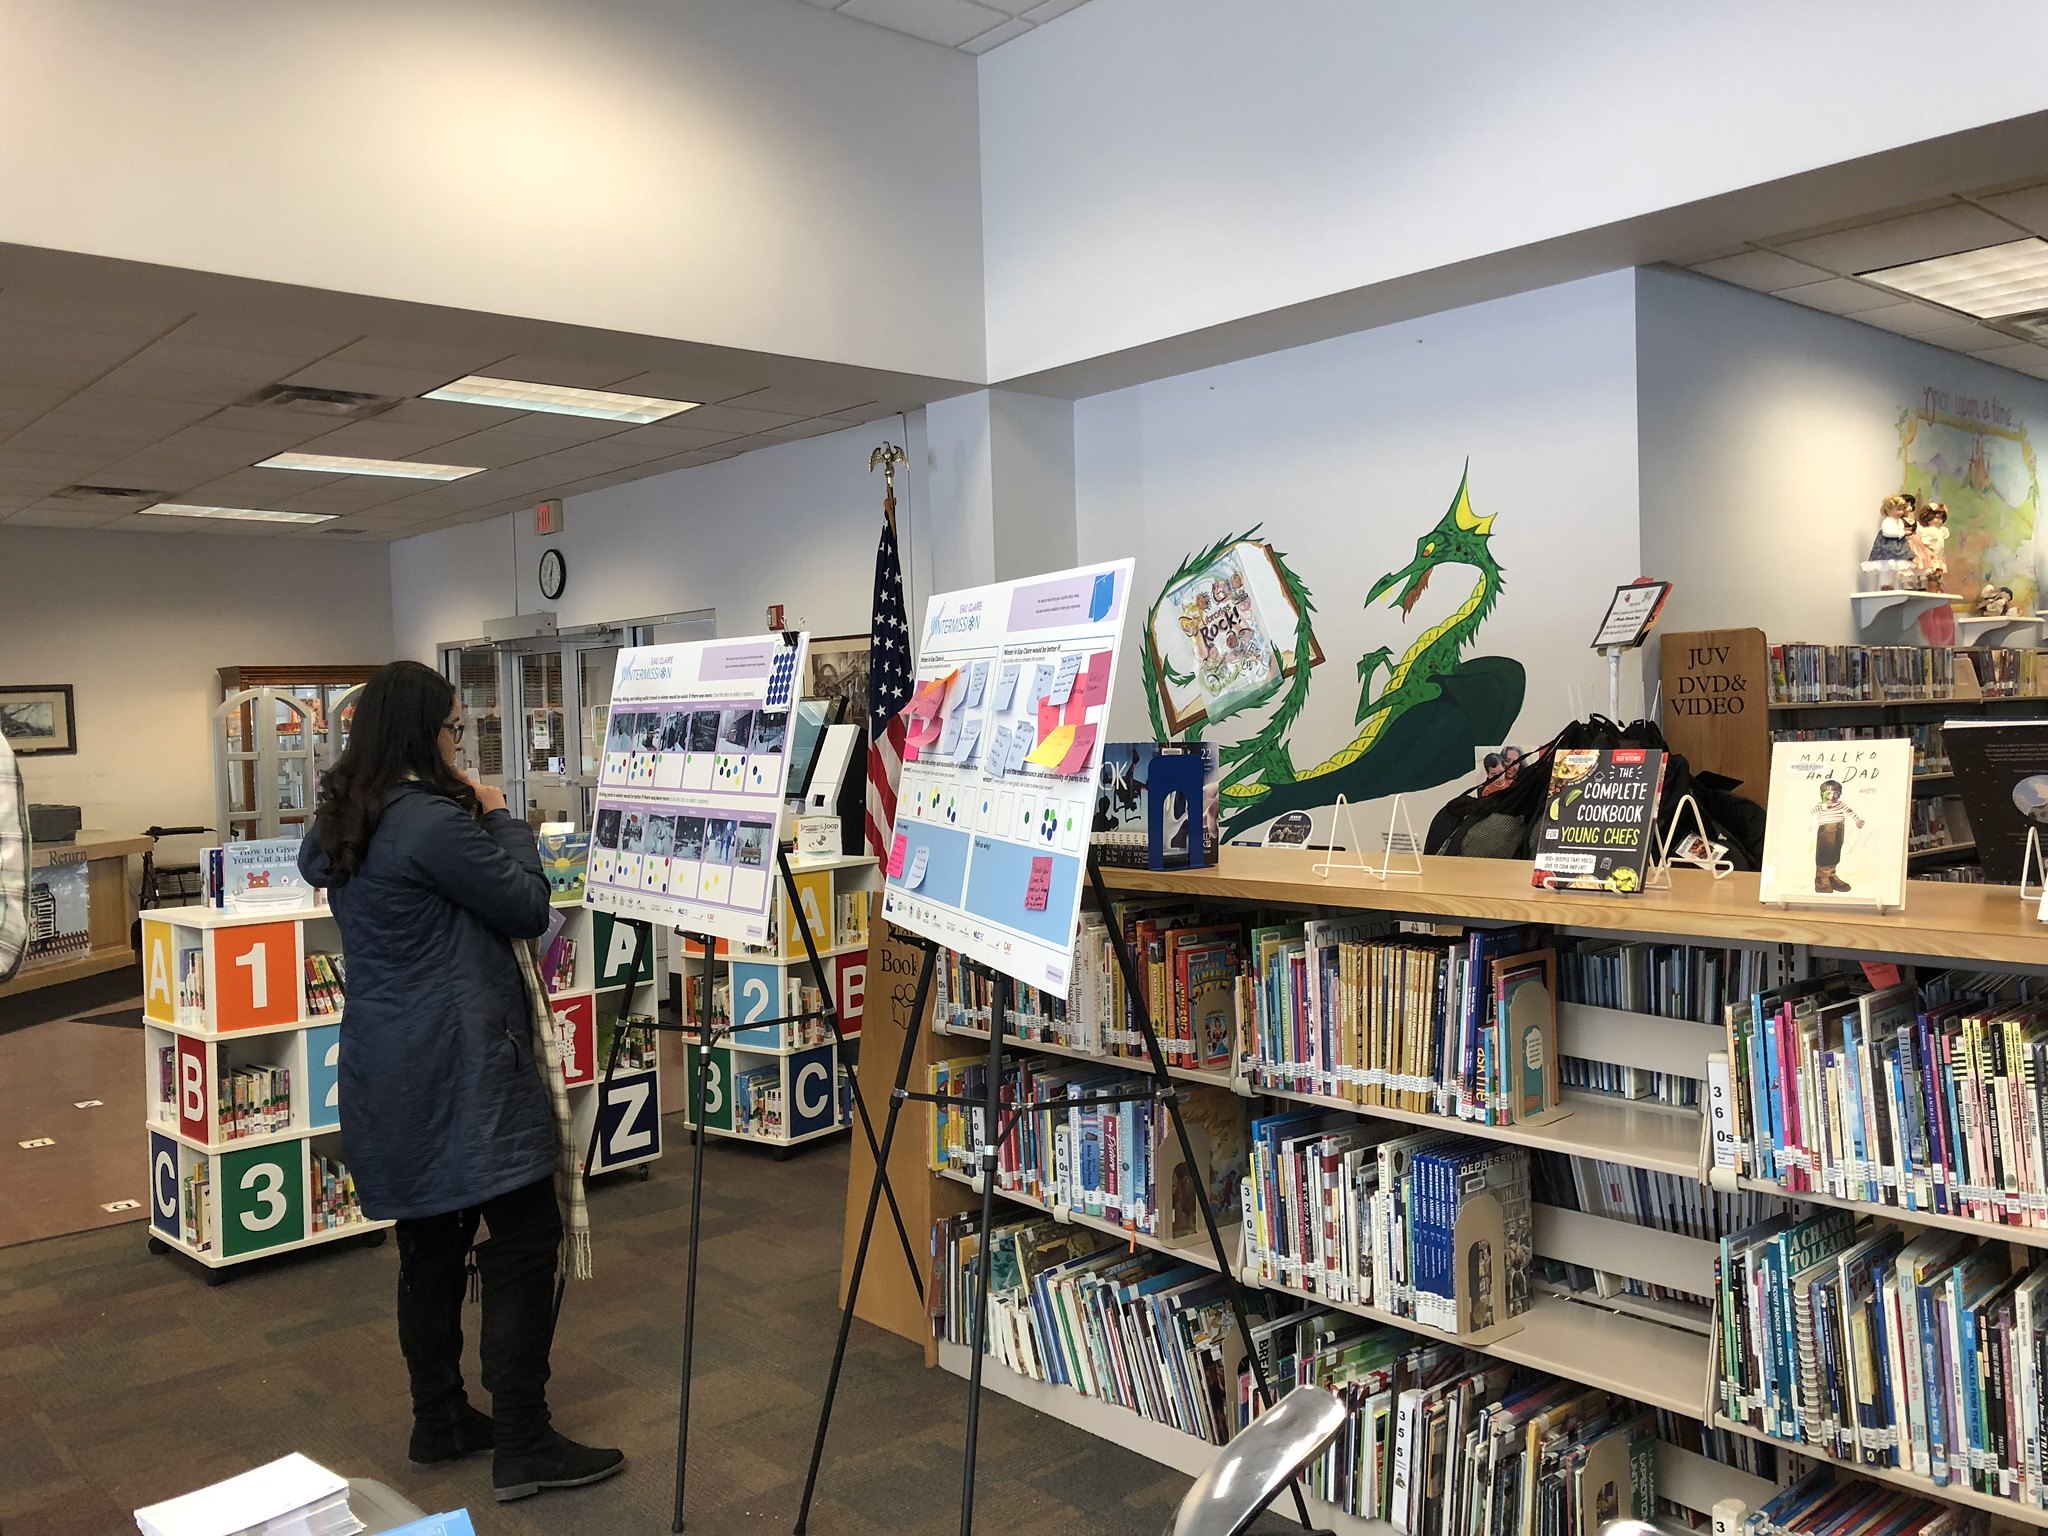 A woman looking at a poster board in a book shop or library